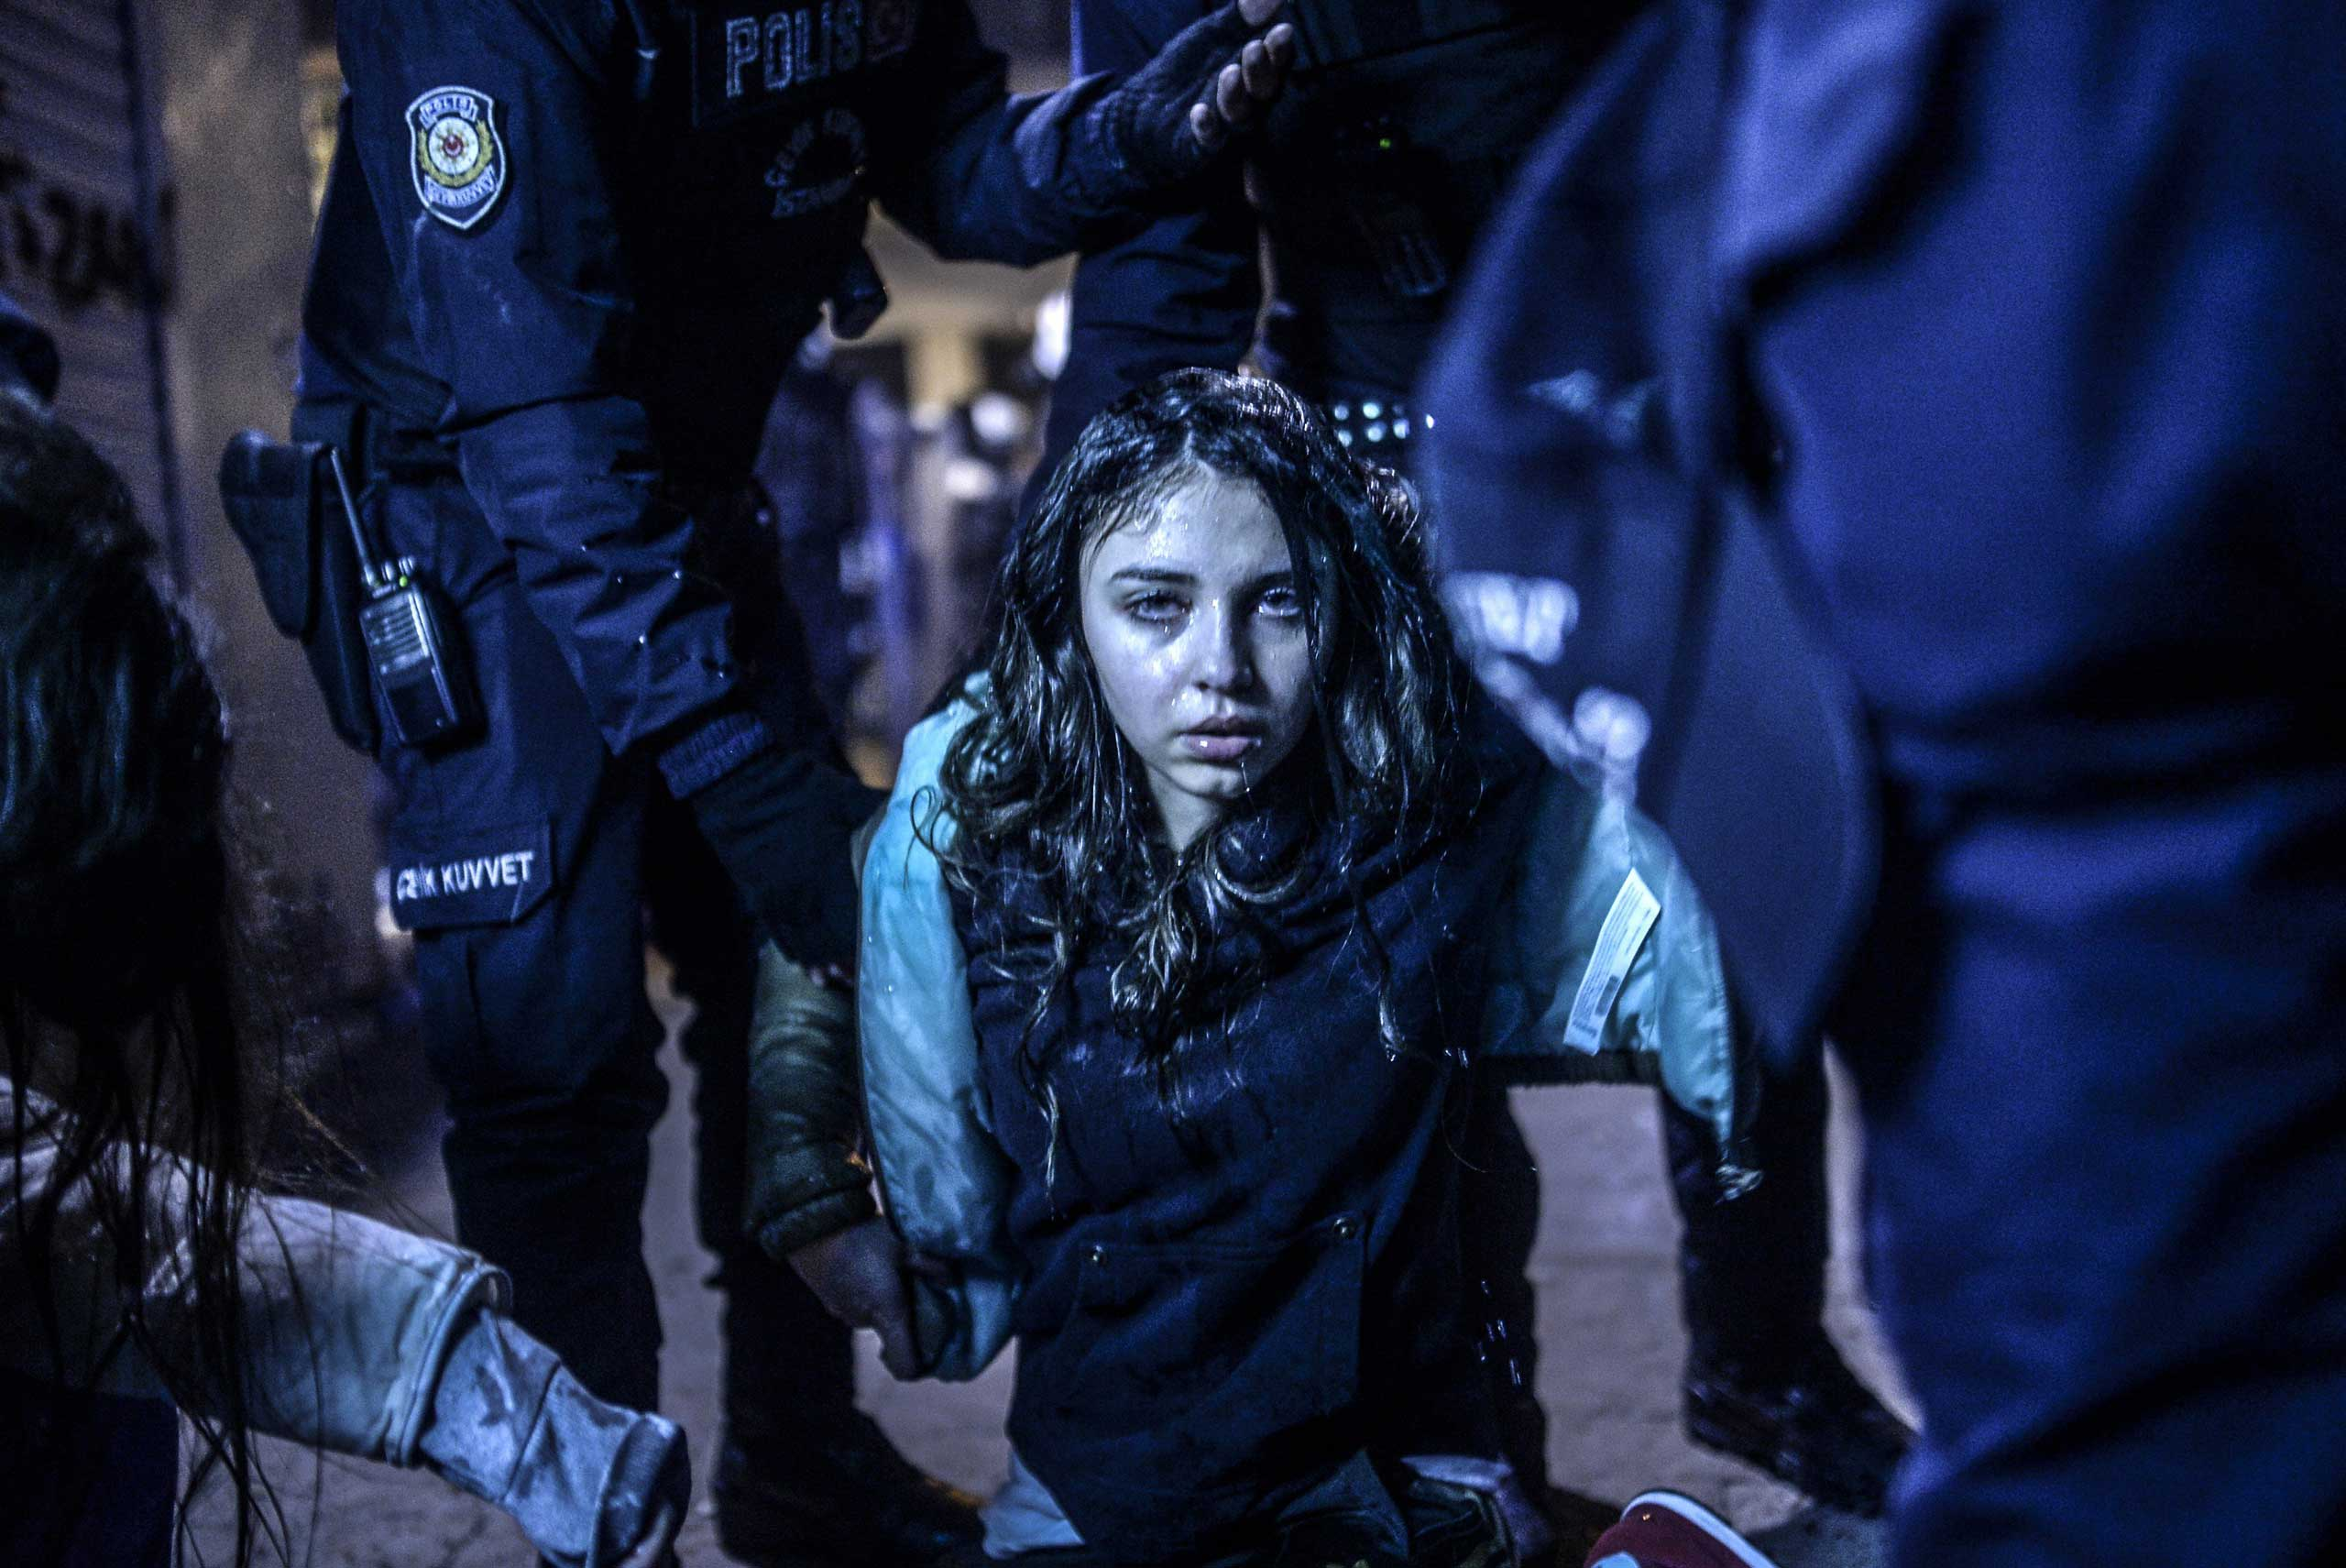 A young girl is pictured after she was  wounded during clashes between riot-police and prostestors after the funeral of Berkin Elvan, the 15-year-old boy who died from injuries suffered during last year's anti-government protests, in Istanbul on March 12, 2014.